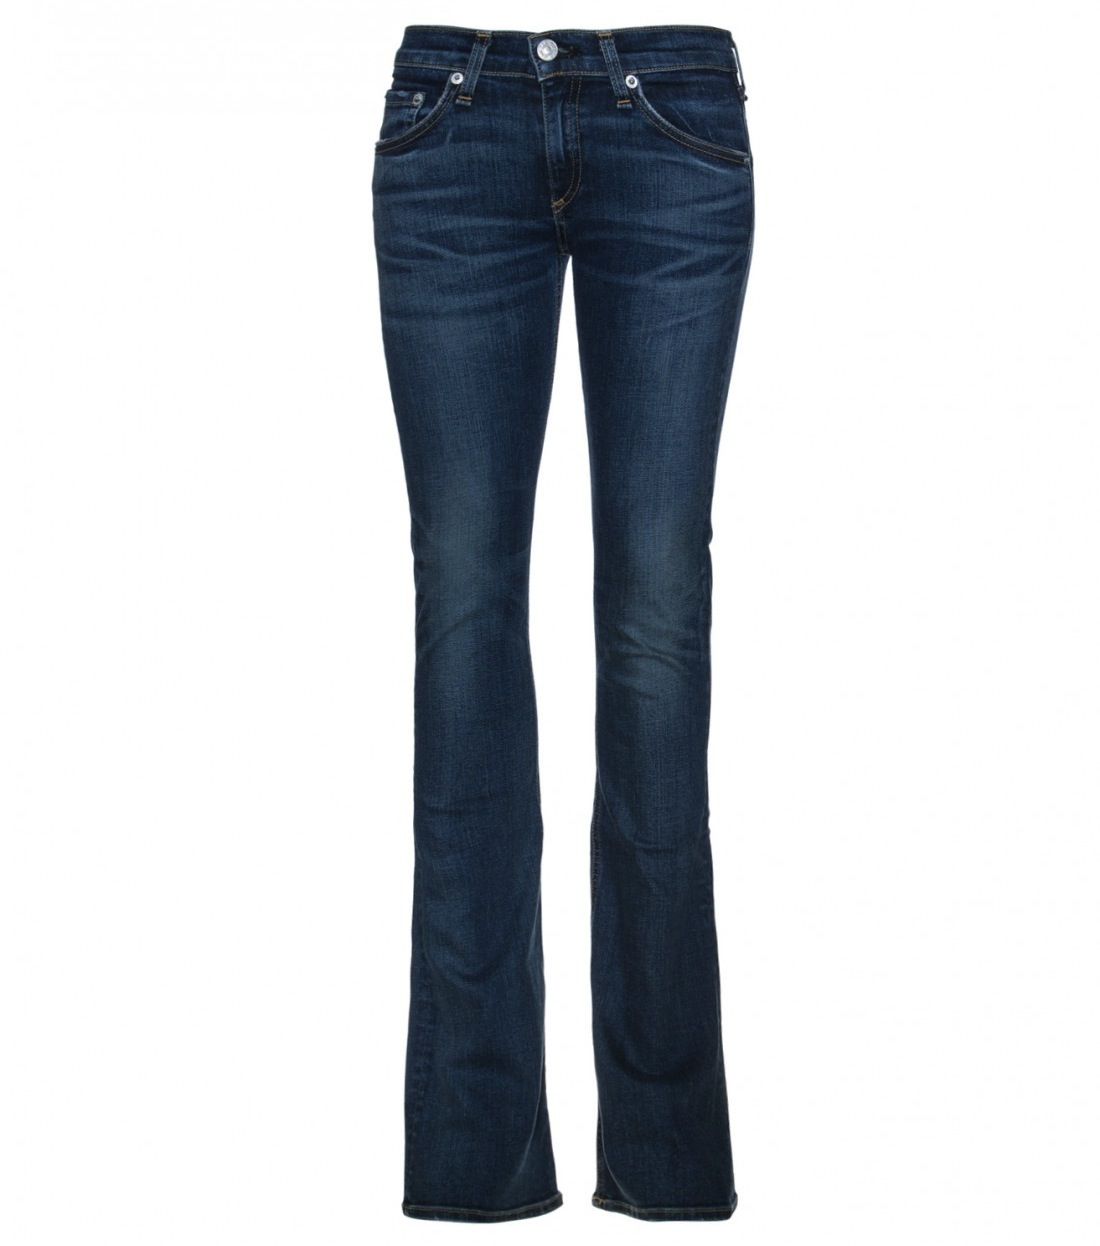 rag-bone bootcut mid rise jeans bishop